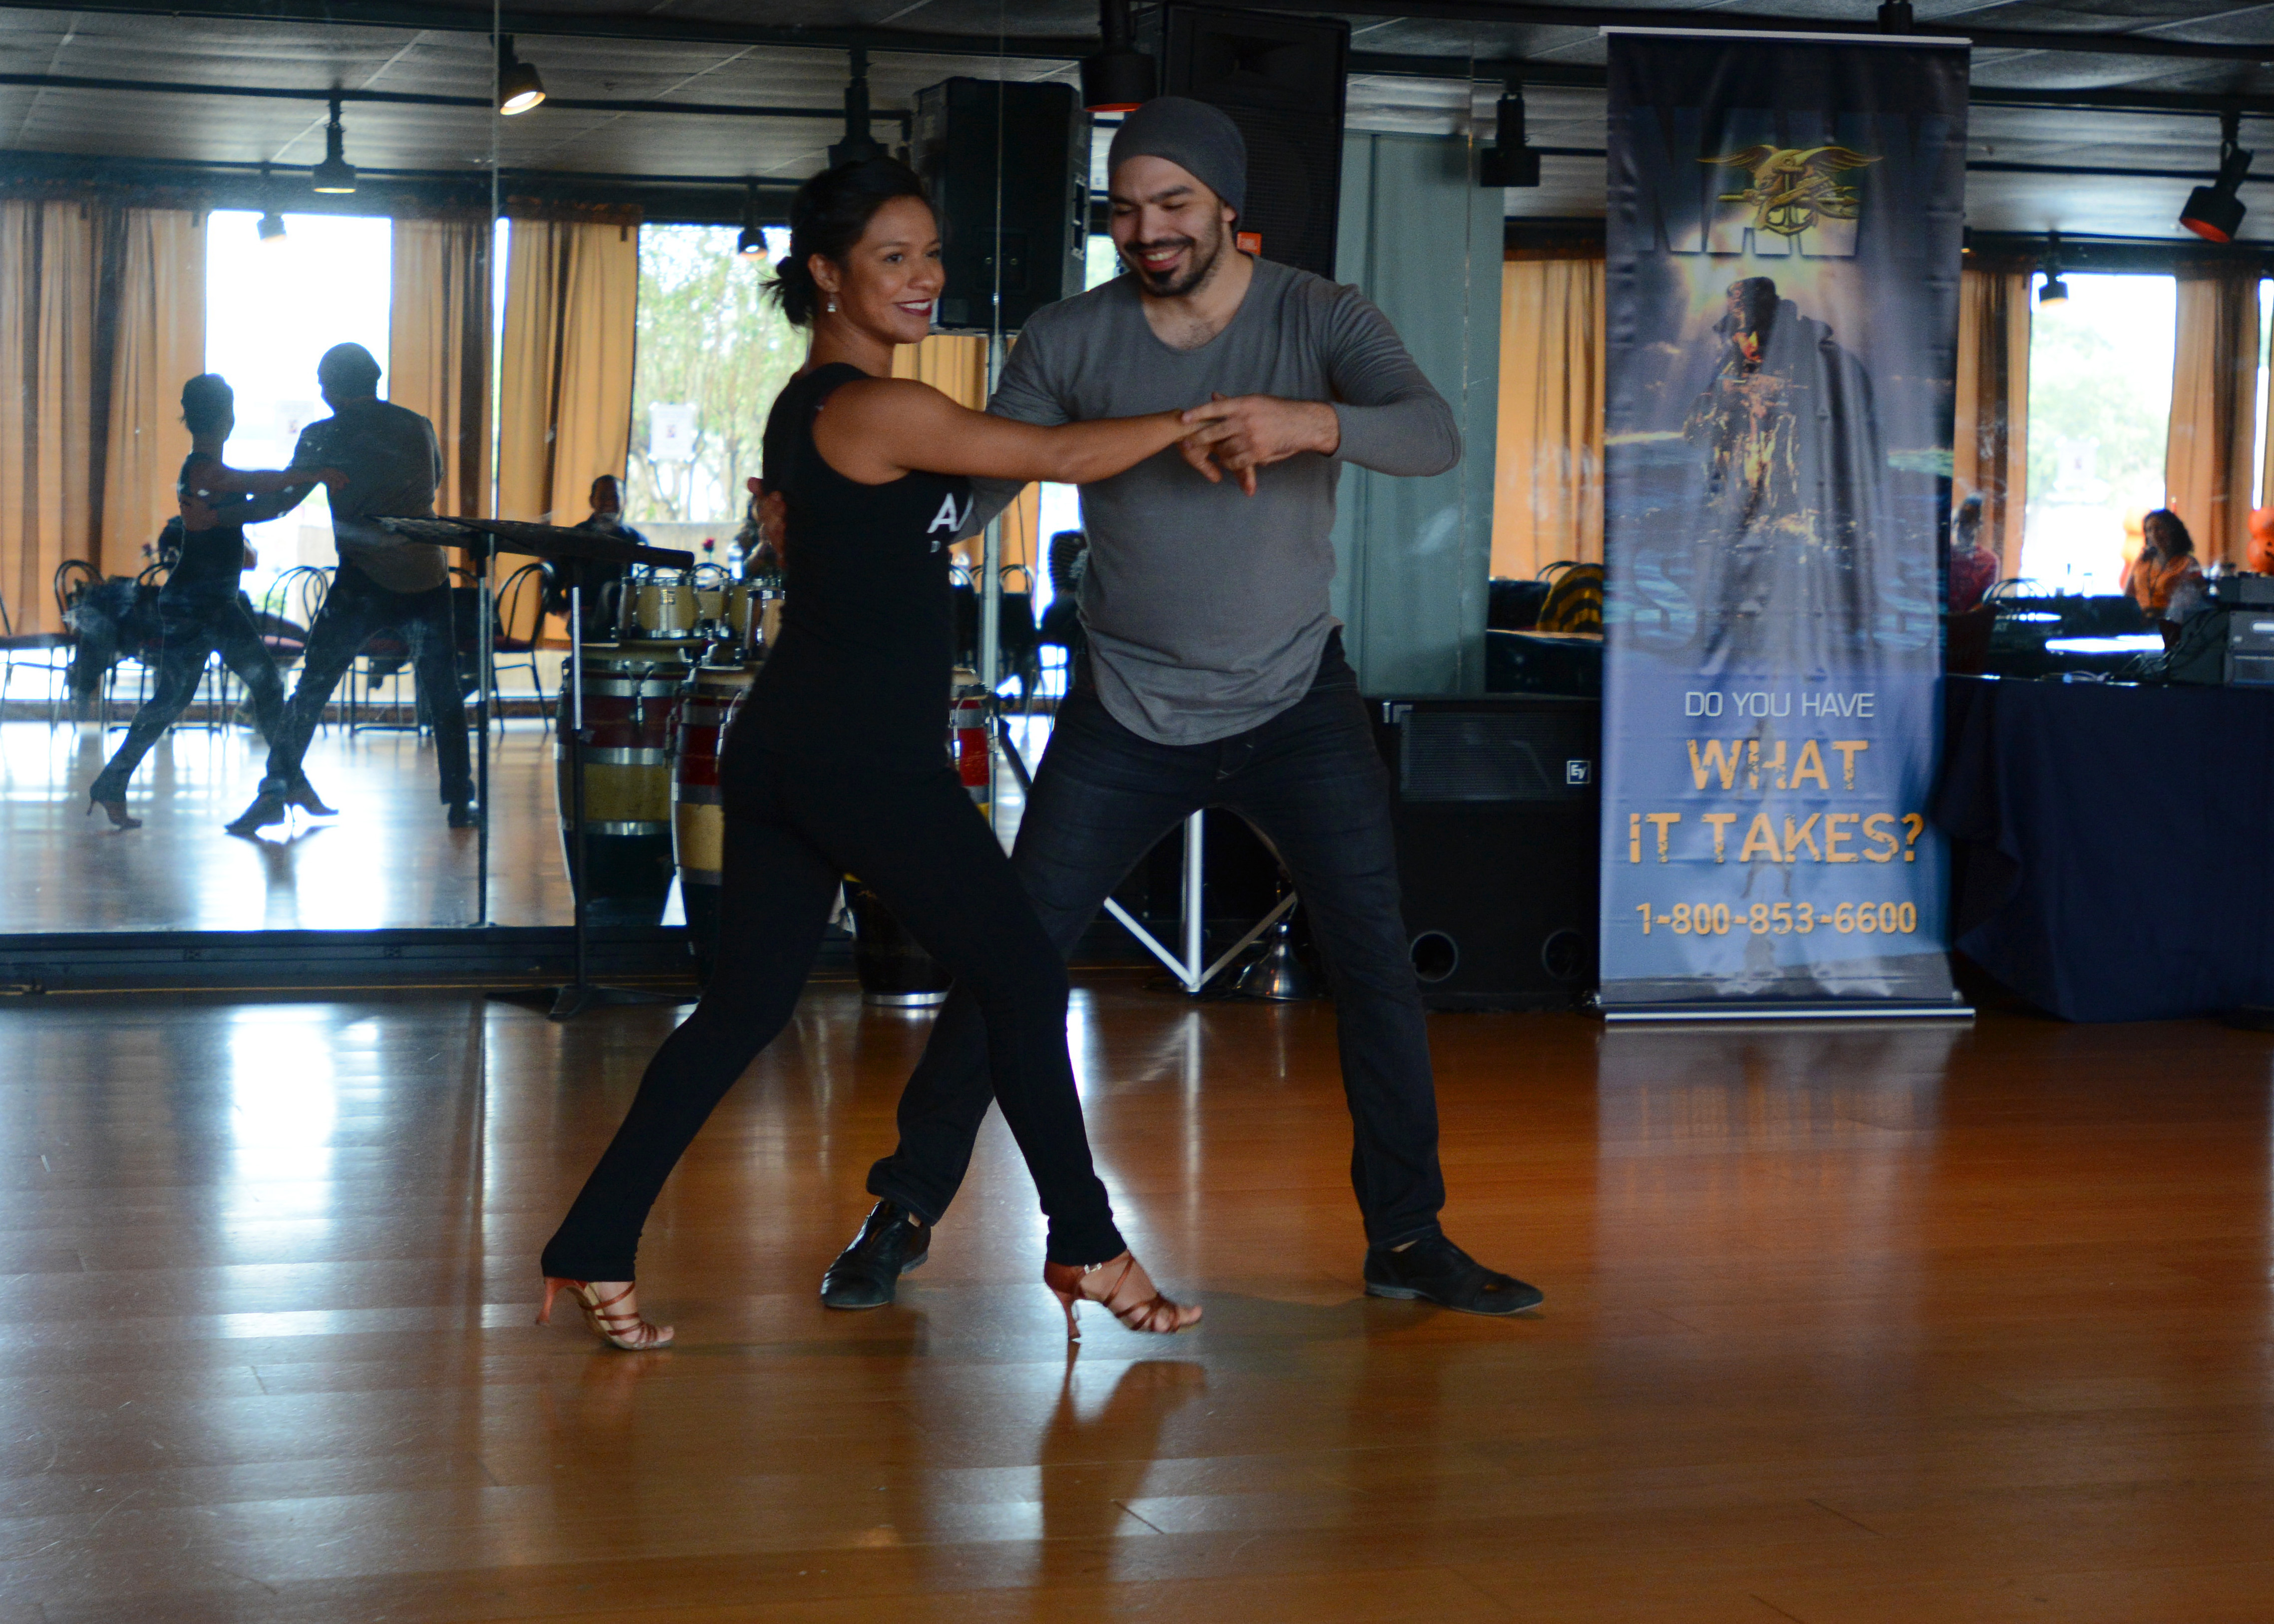 Salomon Amaya, owner of Amaya Dance, performs with his assistant Daisy Aguilar during the Navy and Amaya Dance salsa workshop Oct. 23. The beneft promoted salsa dancing as a way to help cope with combat related or general axiety issues affecting active-duty servicemembers in the Houston area and to raise money for future salsa events.  Navy Recruiting District Houston took lead on the event. (U.S. Navy photo by Mass Communication Specialist 1st Class Chris Fahey/RELEASED).